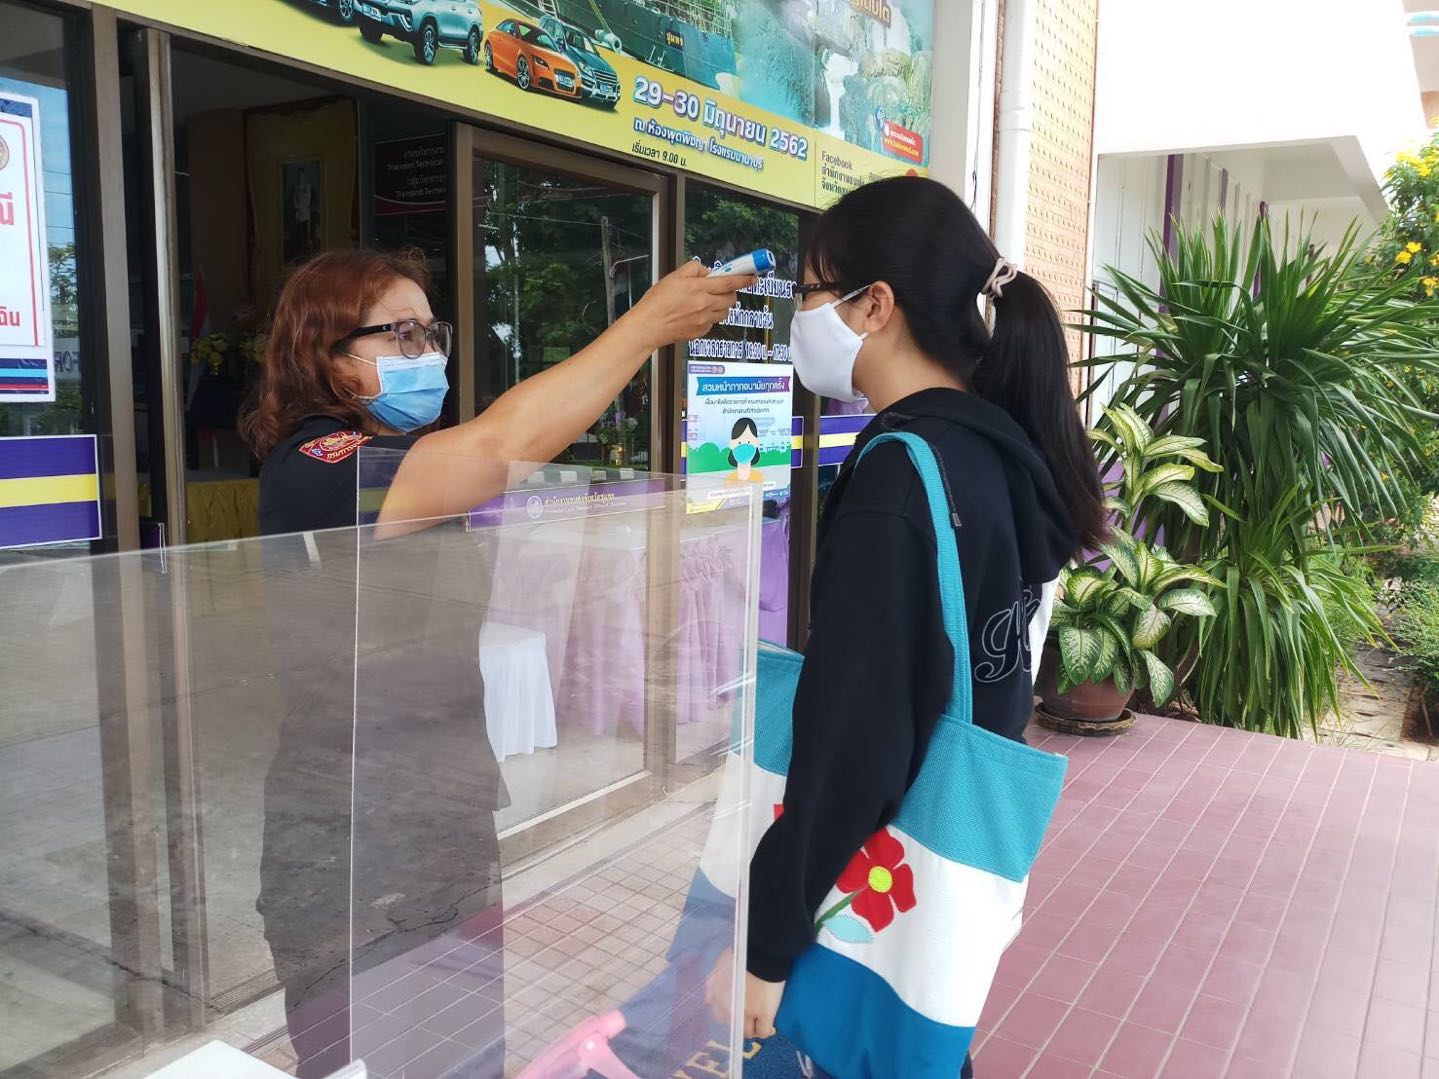 Thailand's COVID-19 cases rise to 3,084 with 1 new infection